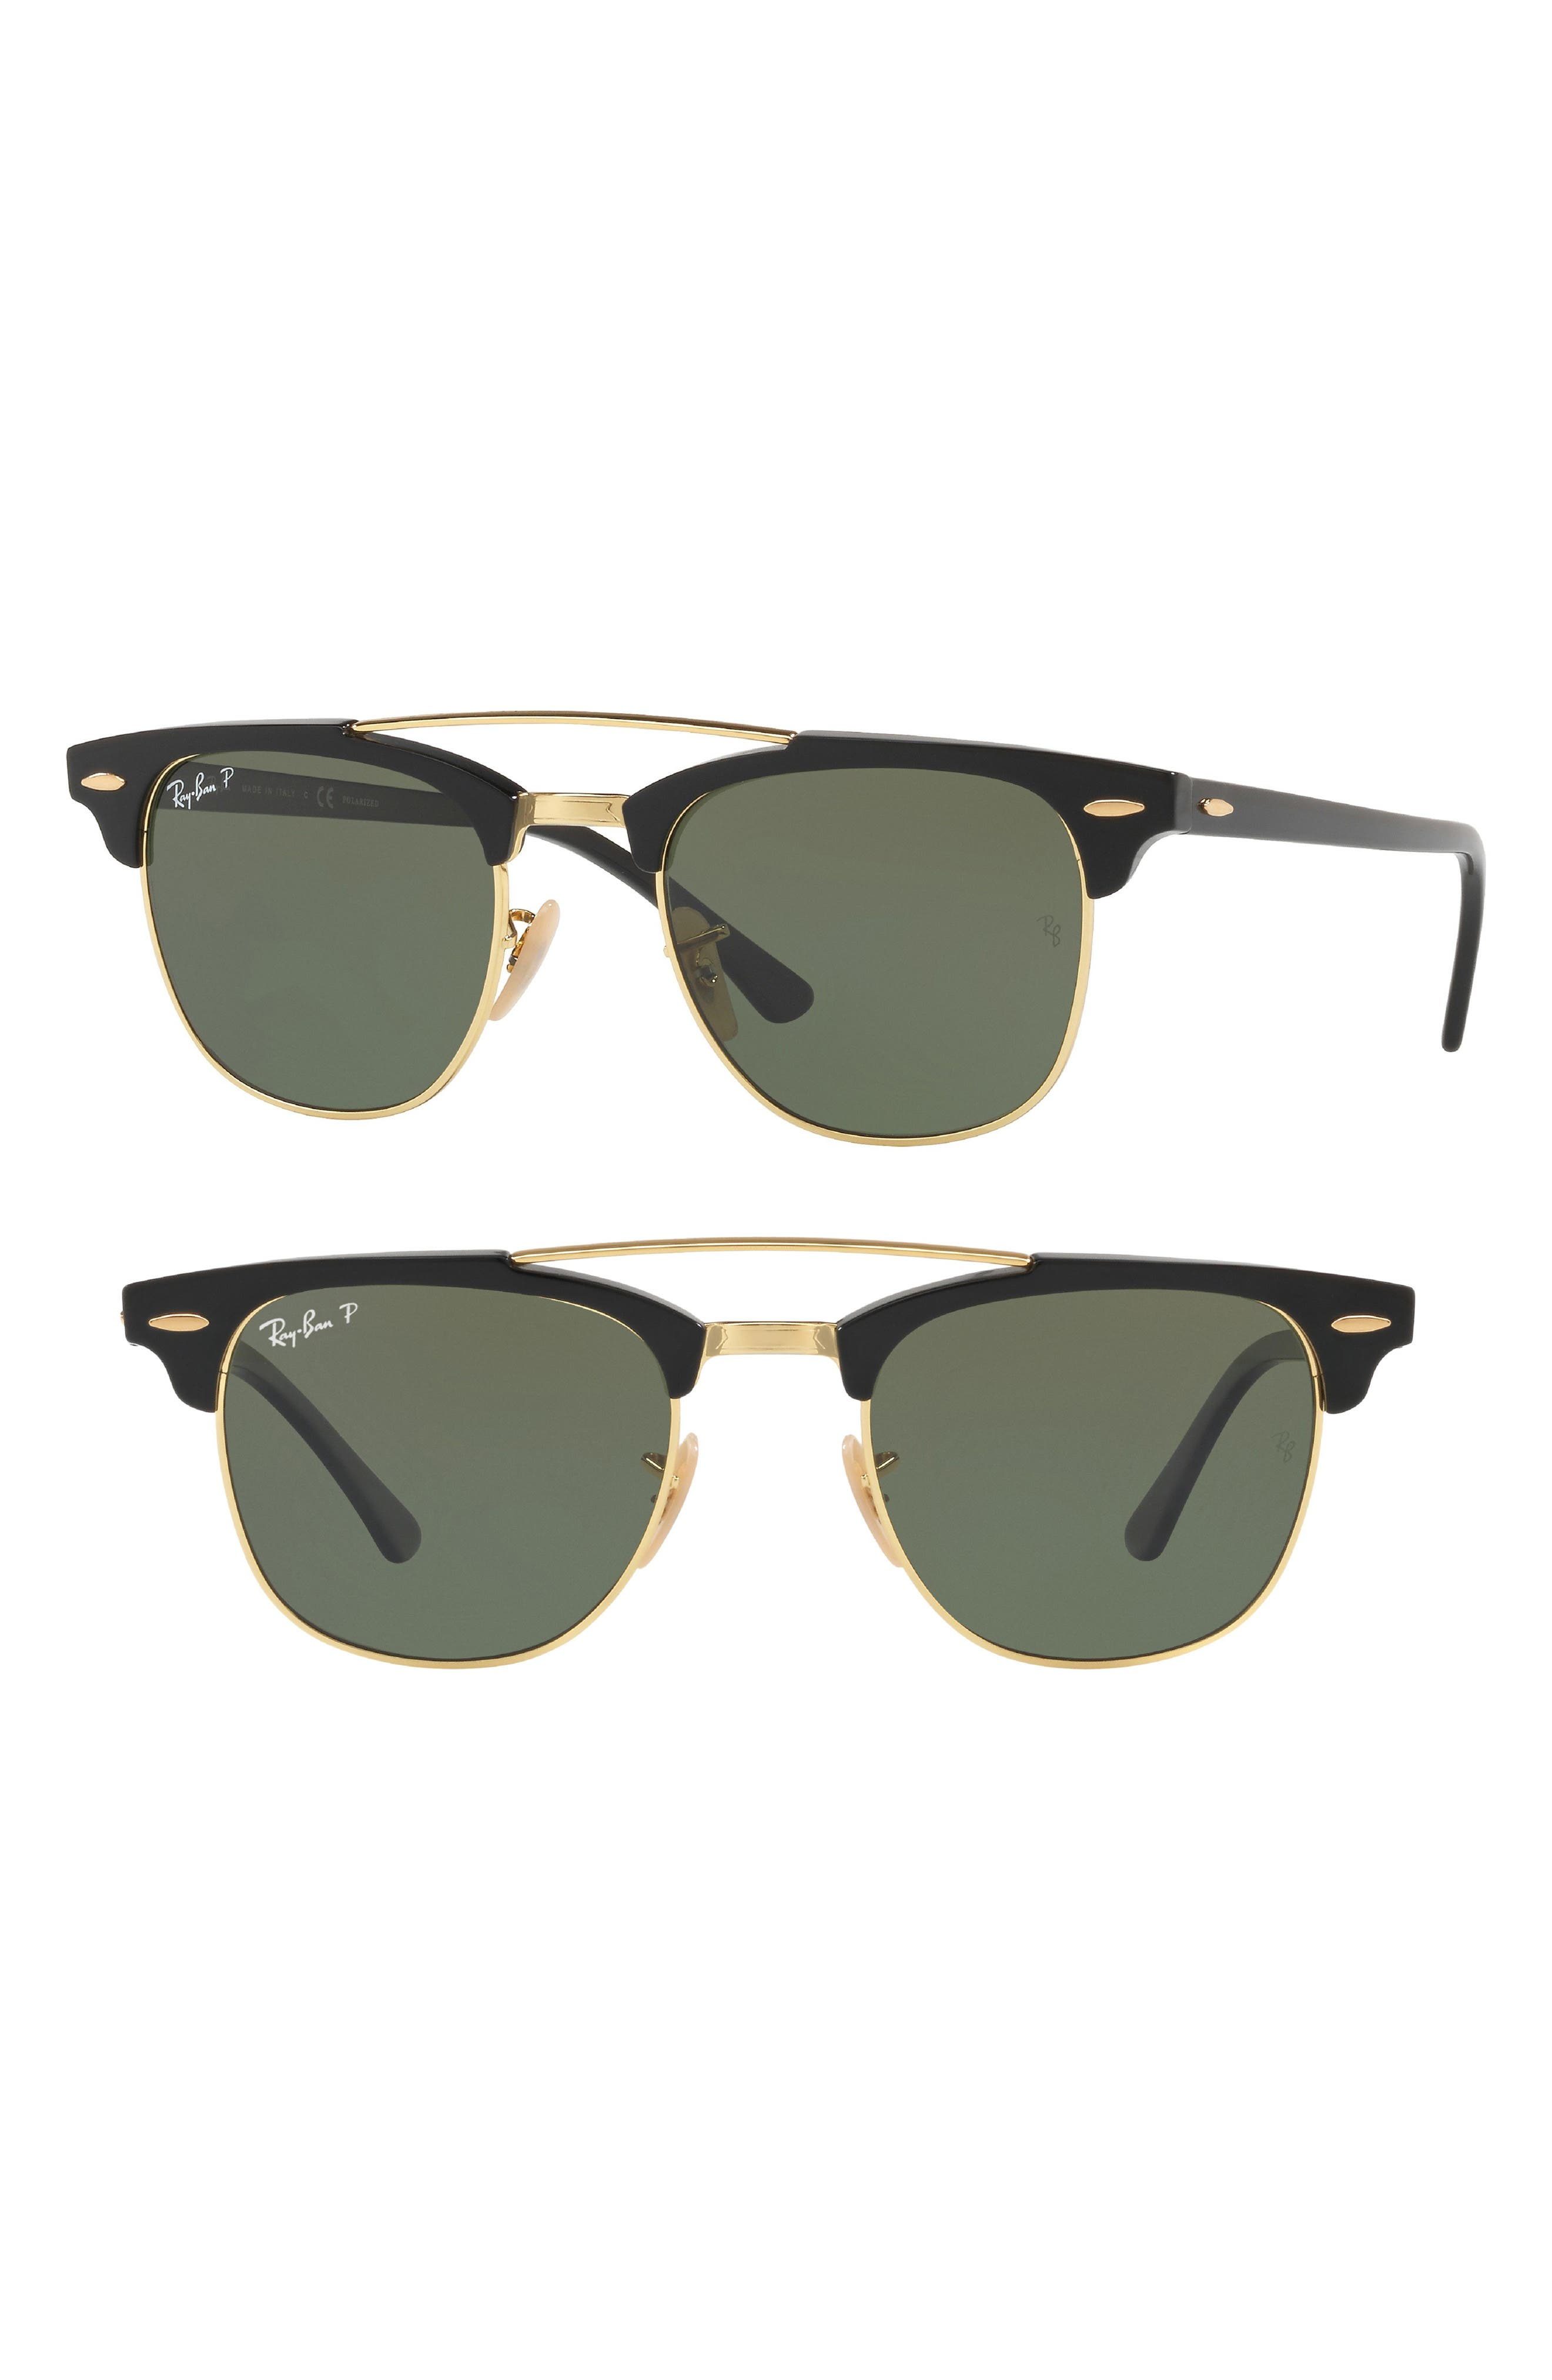 51mm Gradient Mirrored Sunglasses,                             Main thumbnail 1, color,                             001